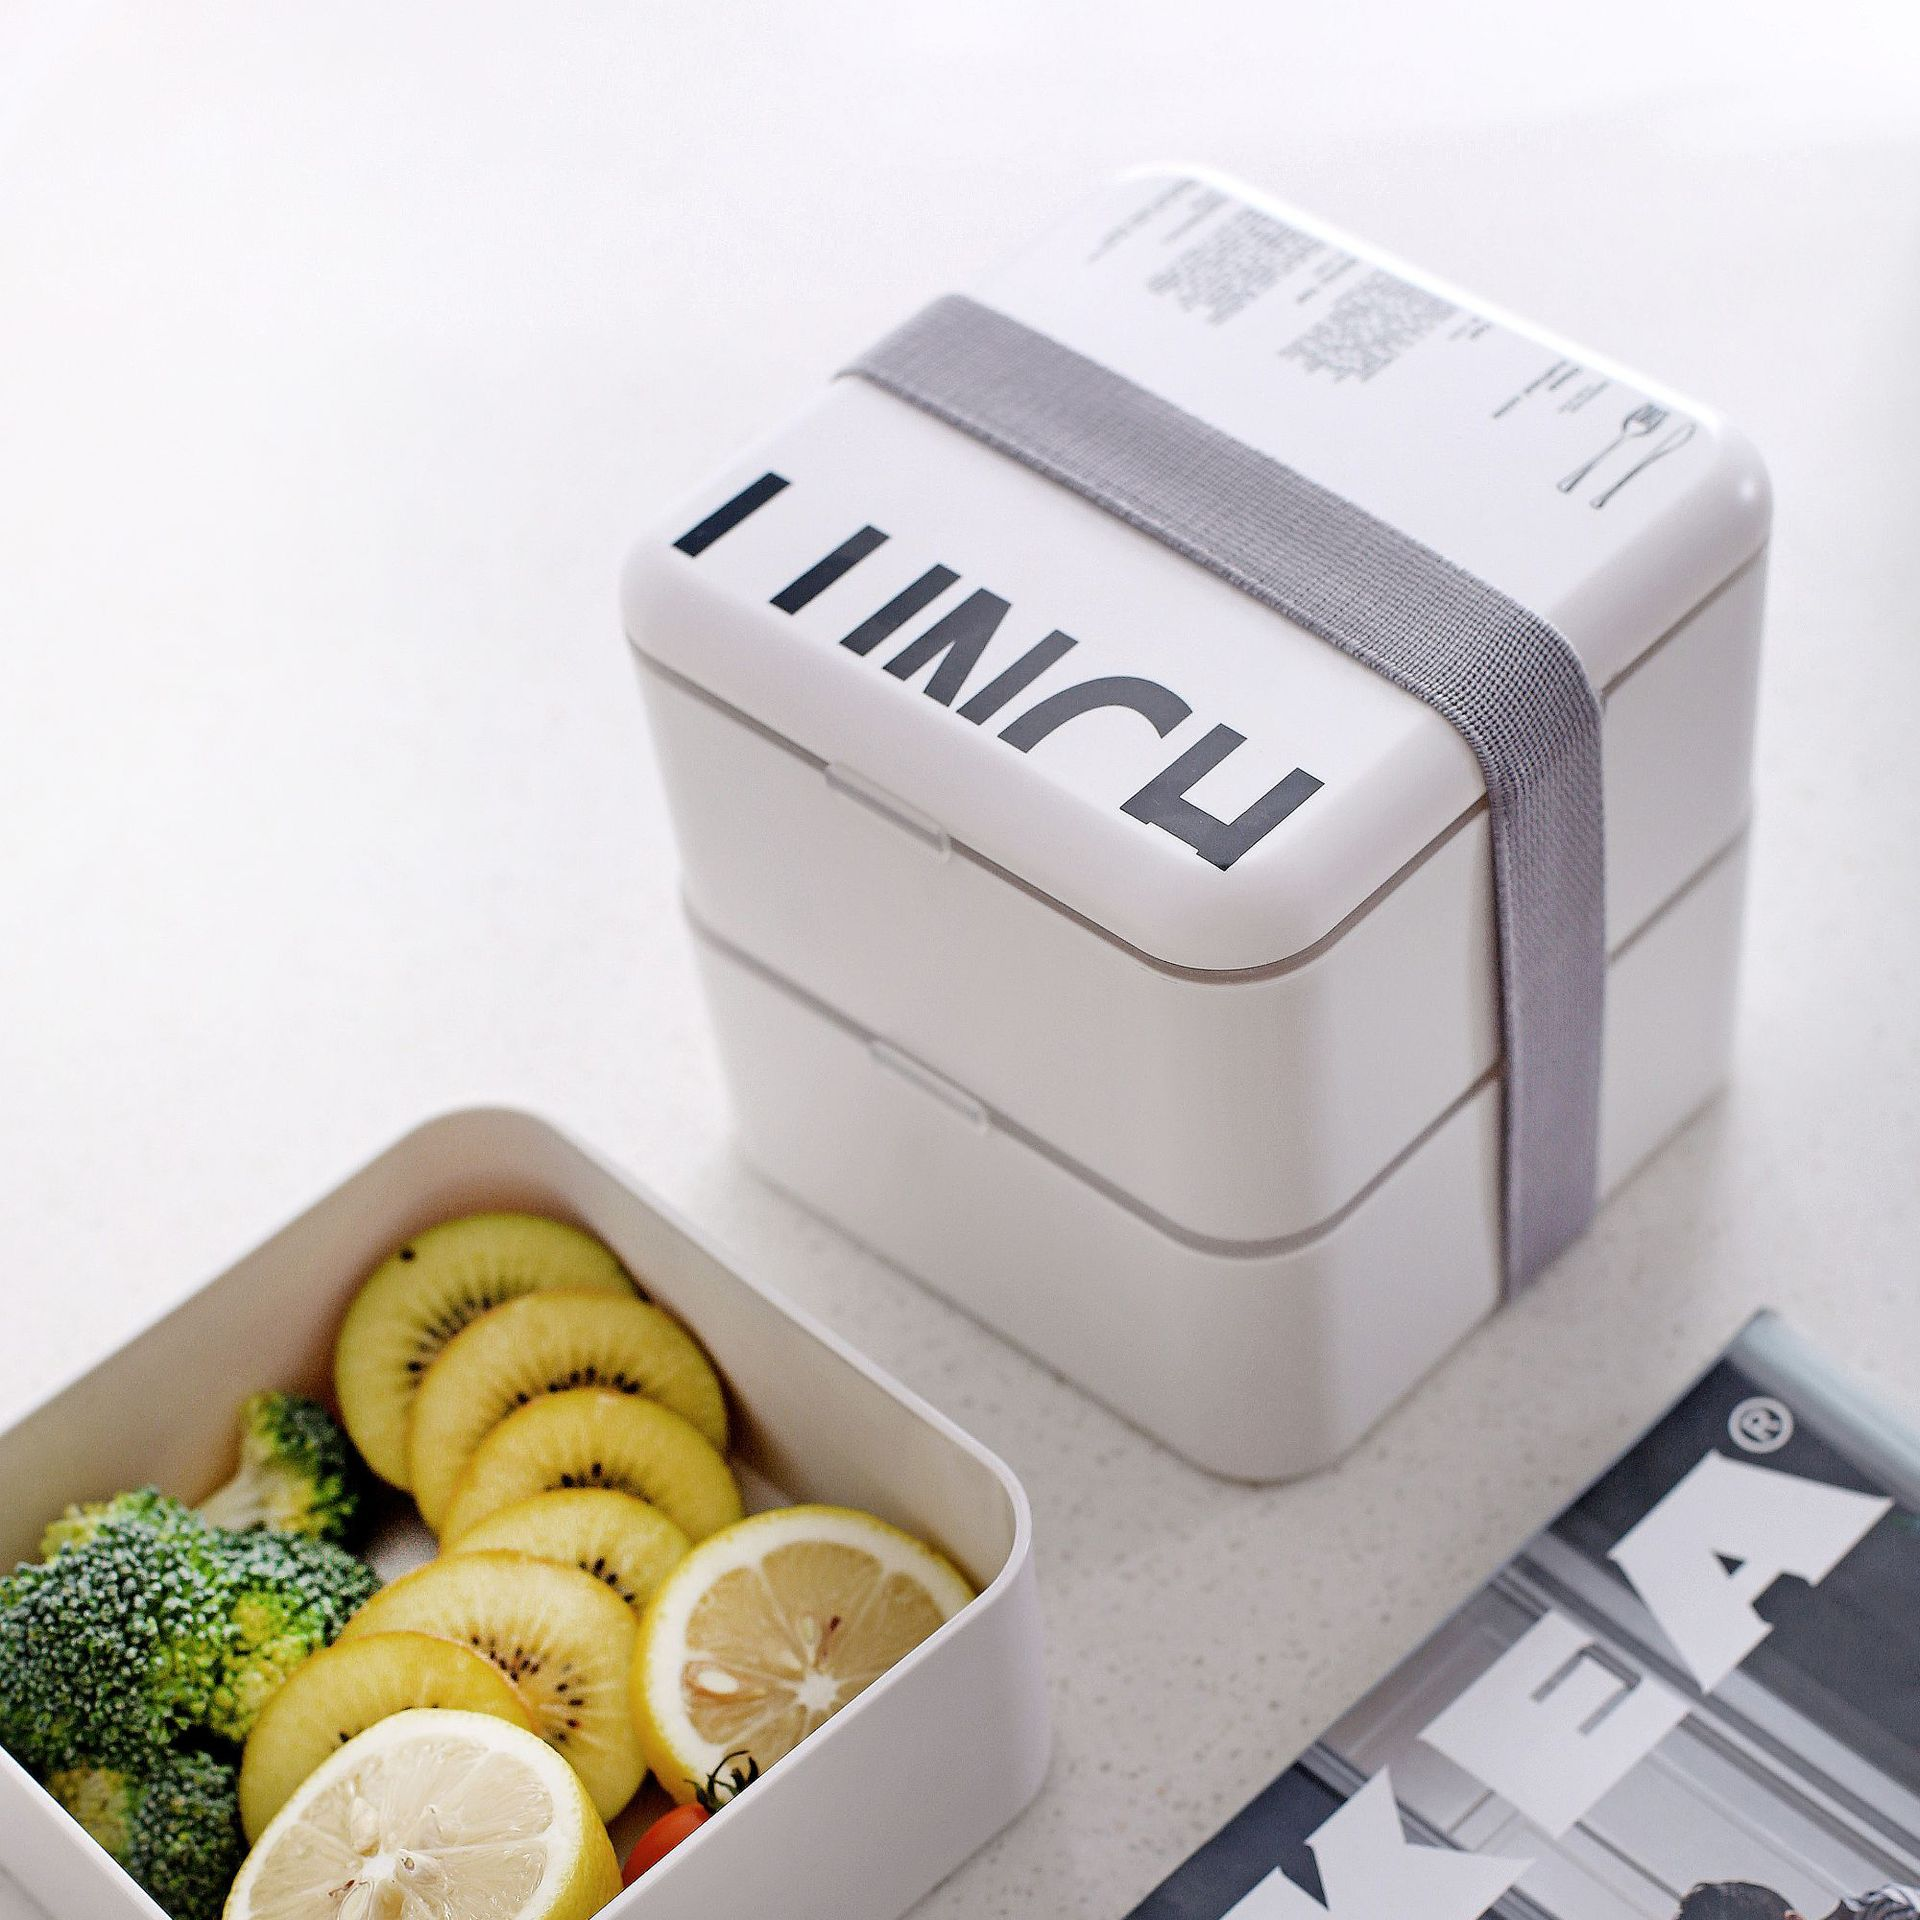 Double layered Square Lunch Box Microwavable Plastic Food Containers Portable Nordic Style Bento Box in Lunch Boxes from Home Garden